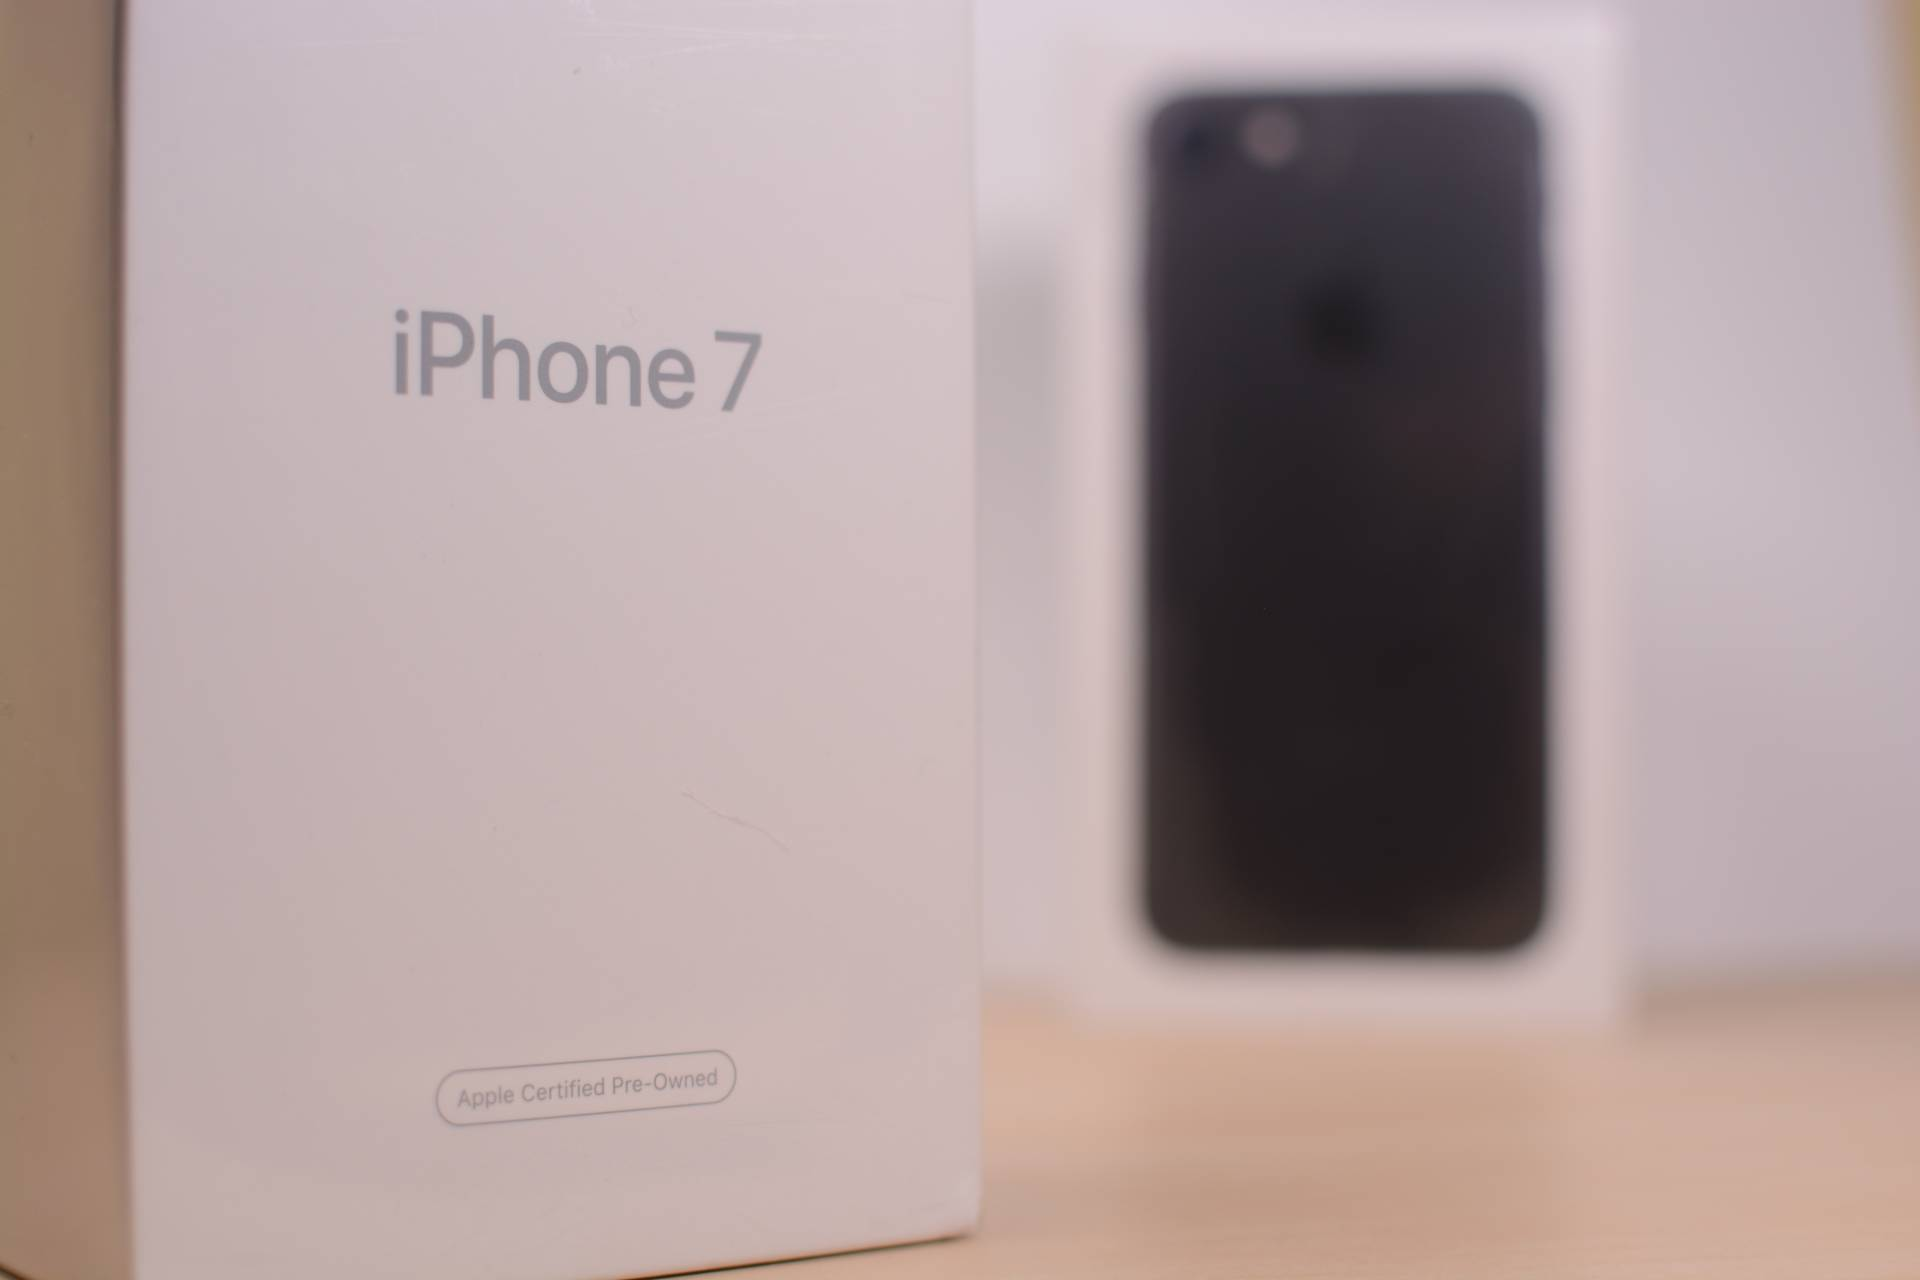 Apple Certified Pre-Owned